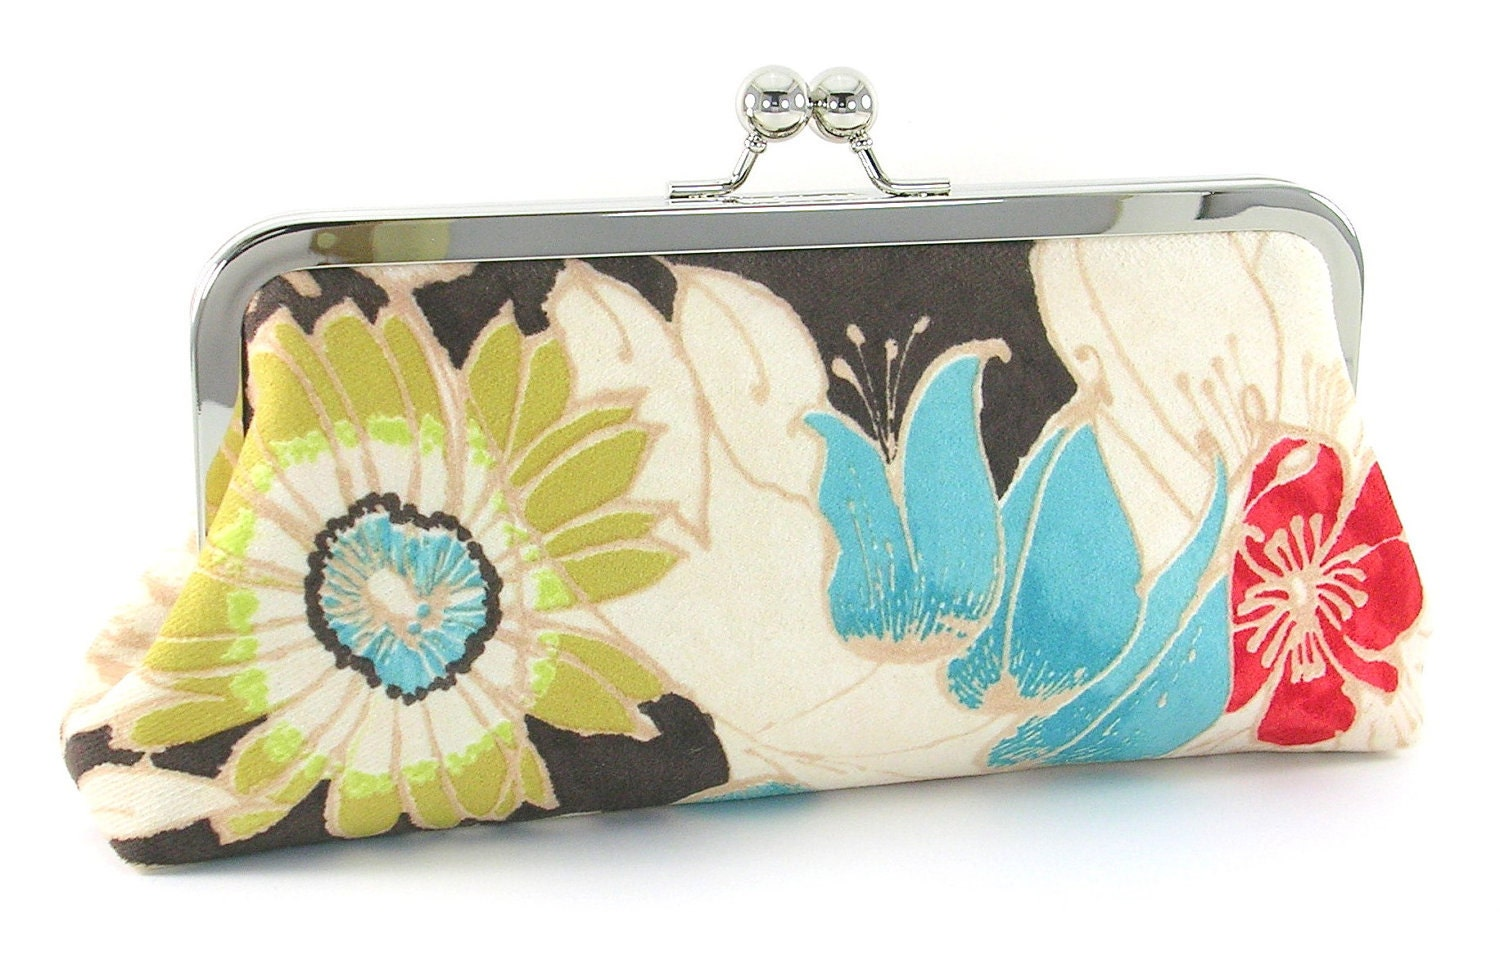 Flower Clutch Purse Green Turquoise Red Floral Evening Bag